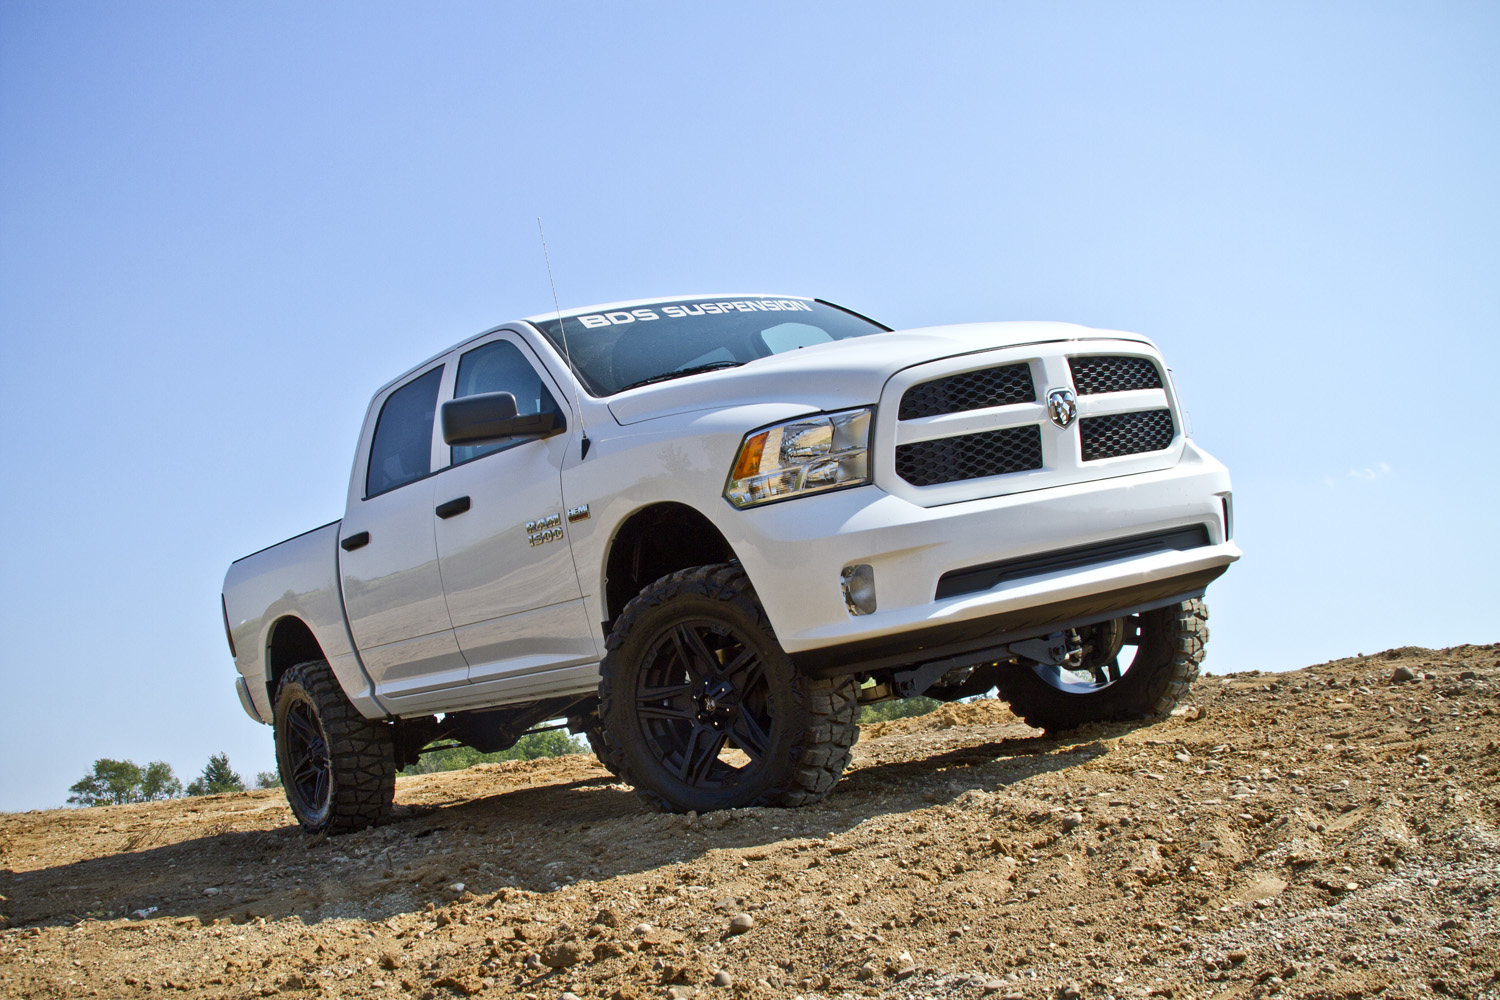 2014 dodge ram 1500 hires image dodge_1500_14w_6injpg - Dodge Ram 2014 Lifted